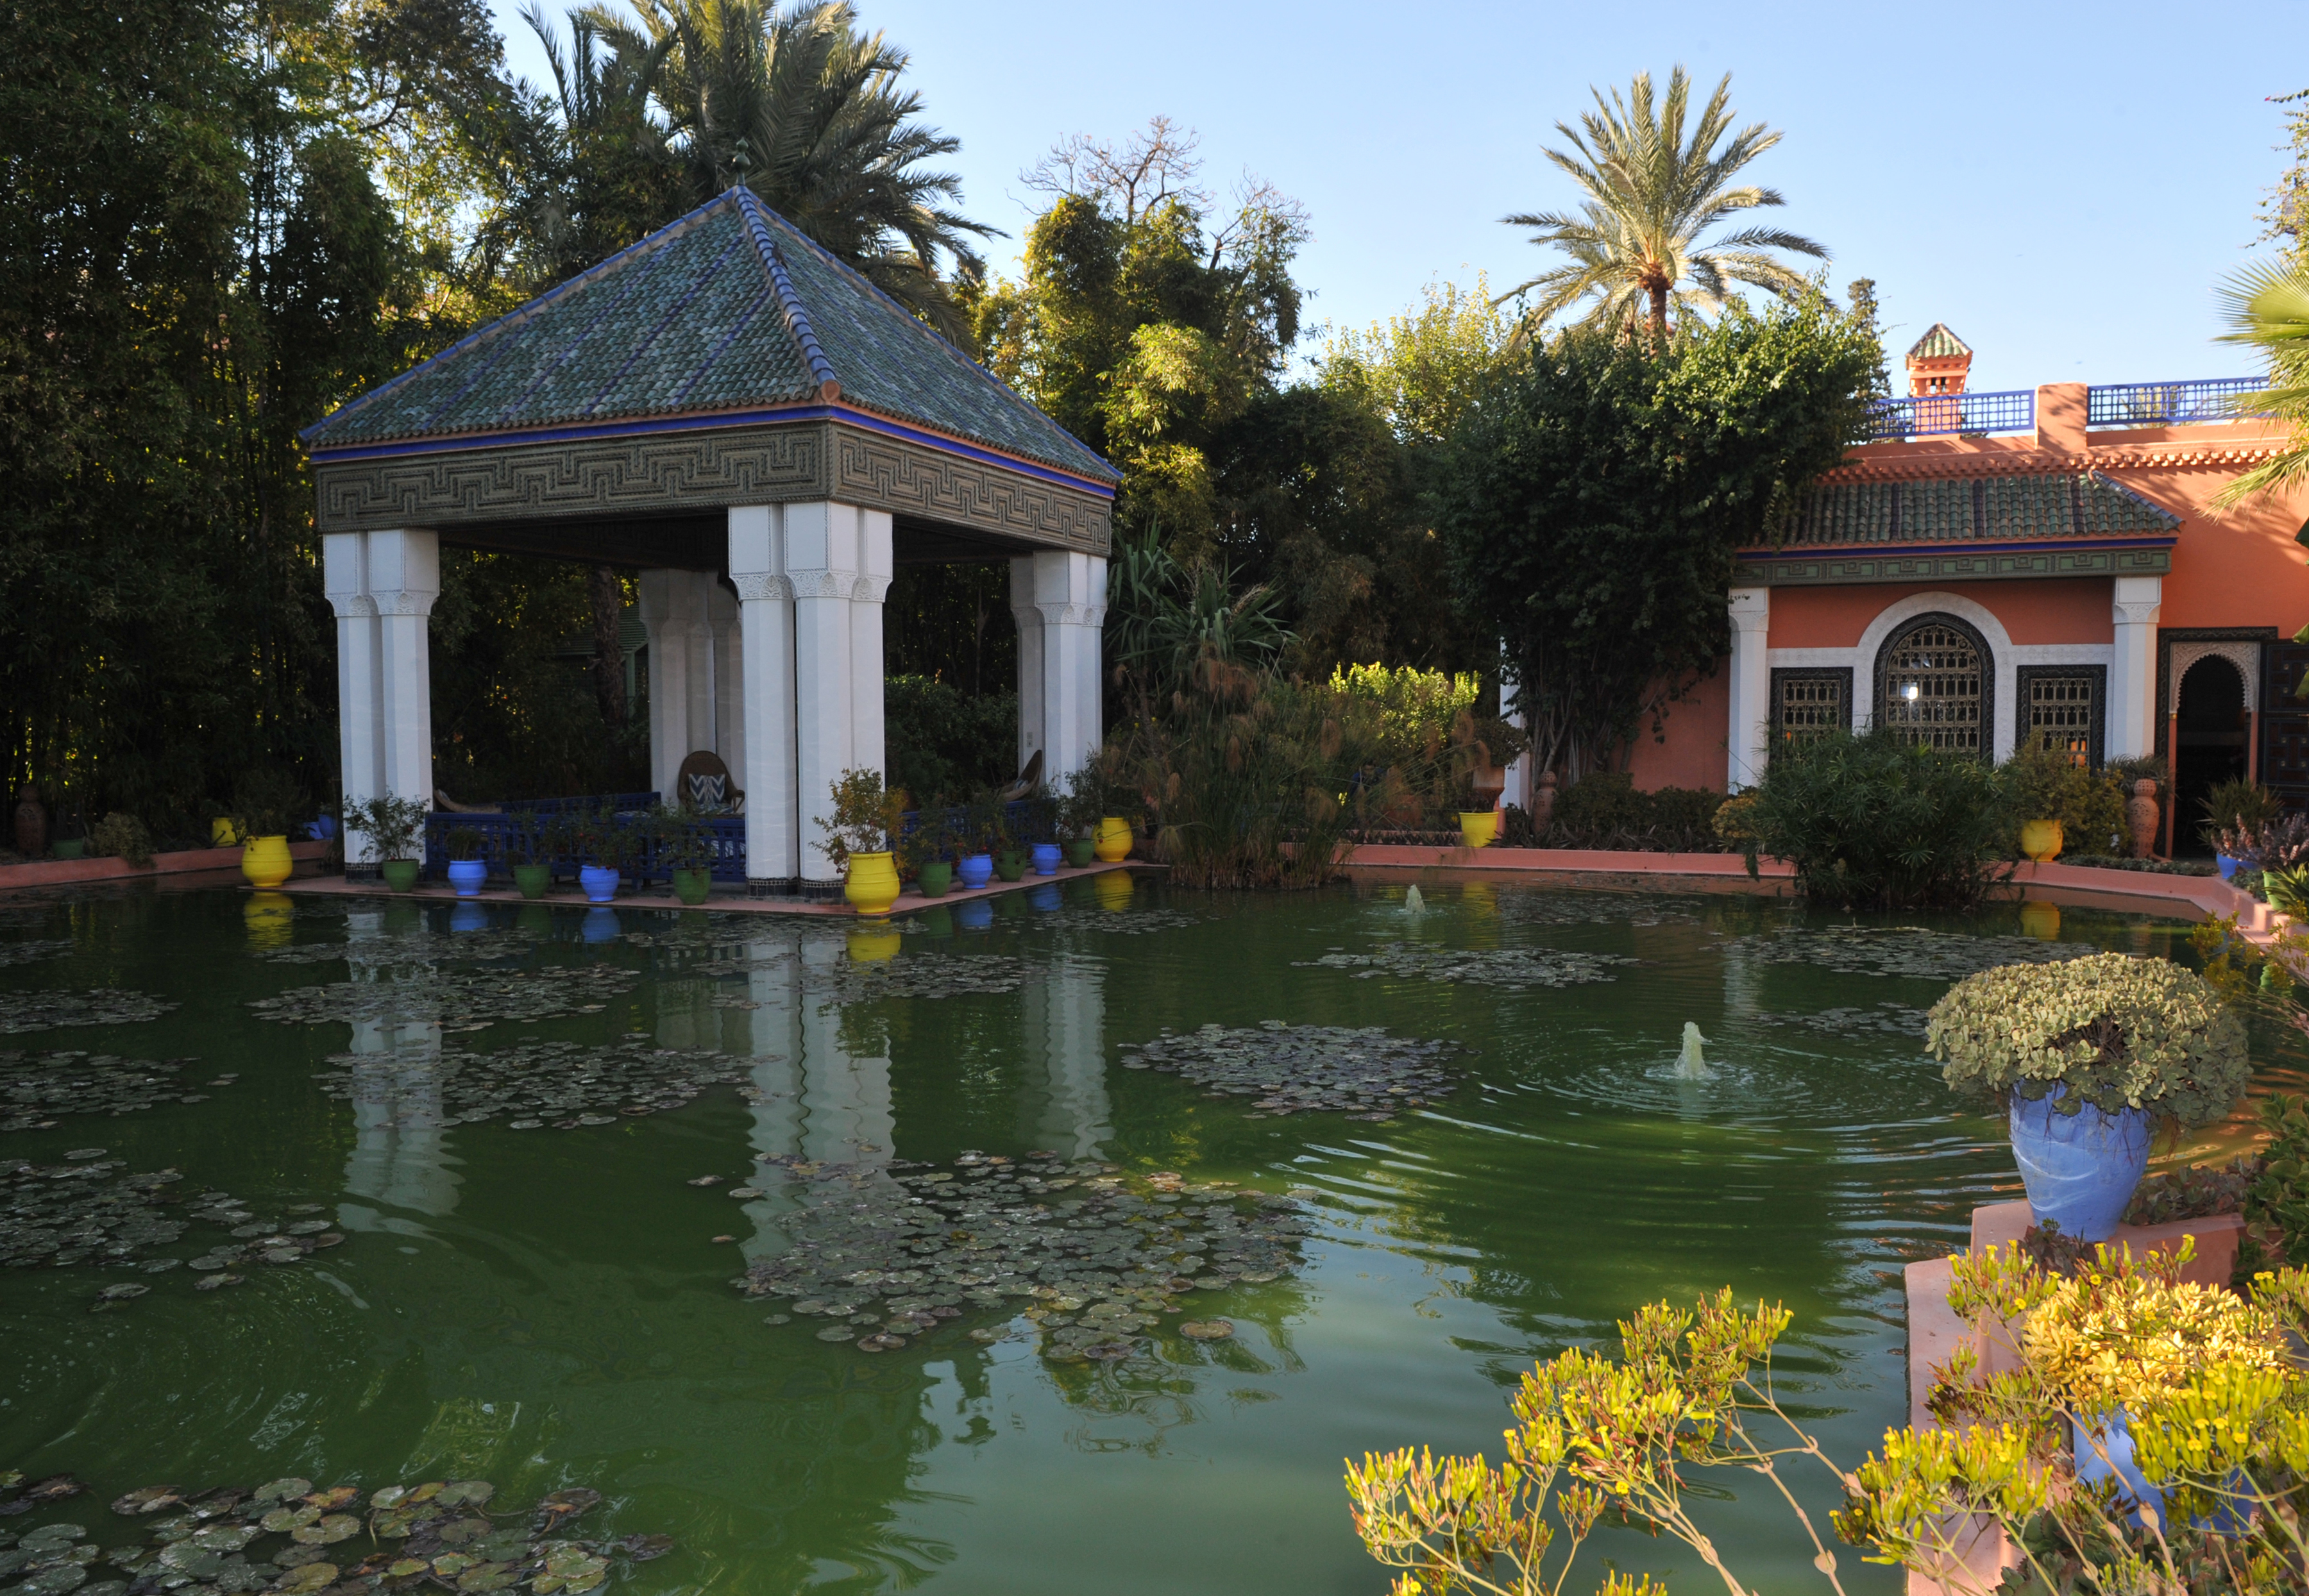 yves saint laurents legacy in bloom with new museum at jardin majorelle cnn style - Majorelle Garden